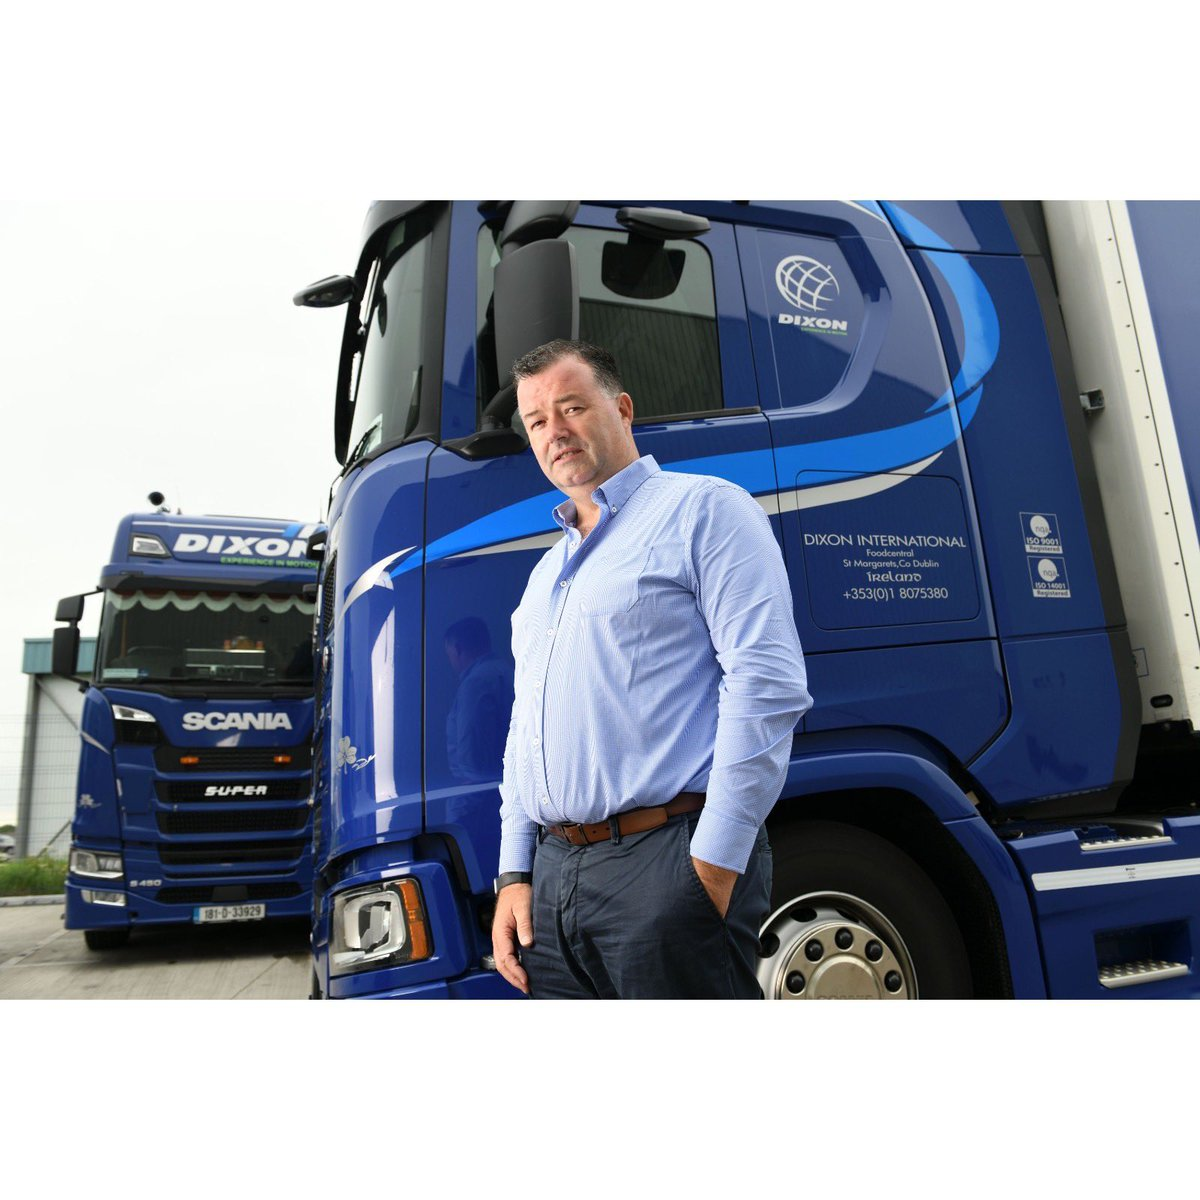 MD of @DixonTransport Michael Dixon sat down and chatted to the @thetimes about all things Covid-19, Brexit and the future of their company in the transport and logistics industry.https://t.co/c6JePeRaD5 https://t.co/0ZZDefMLP5